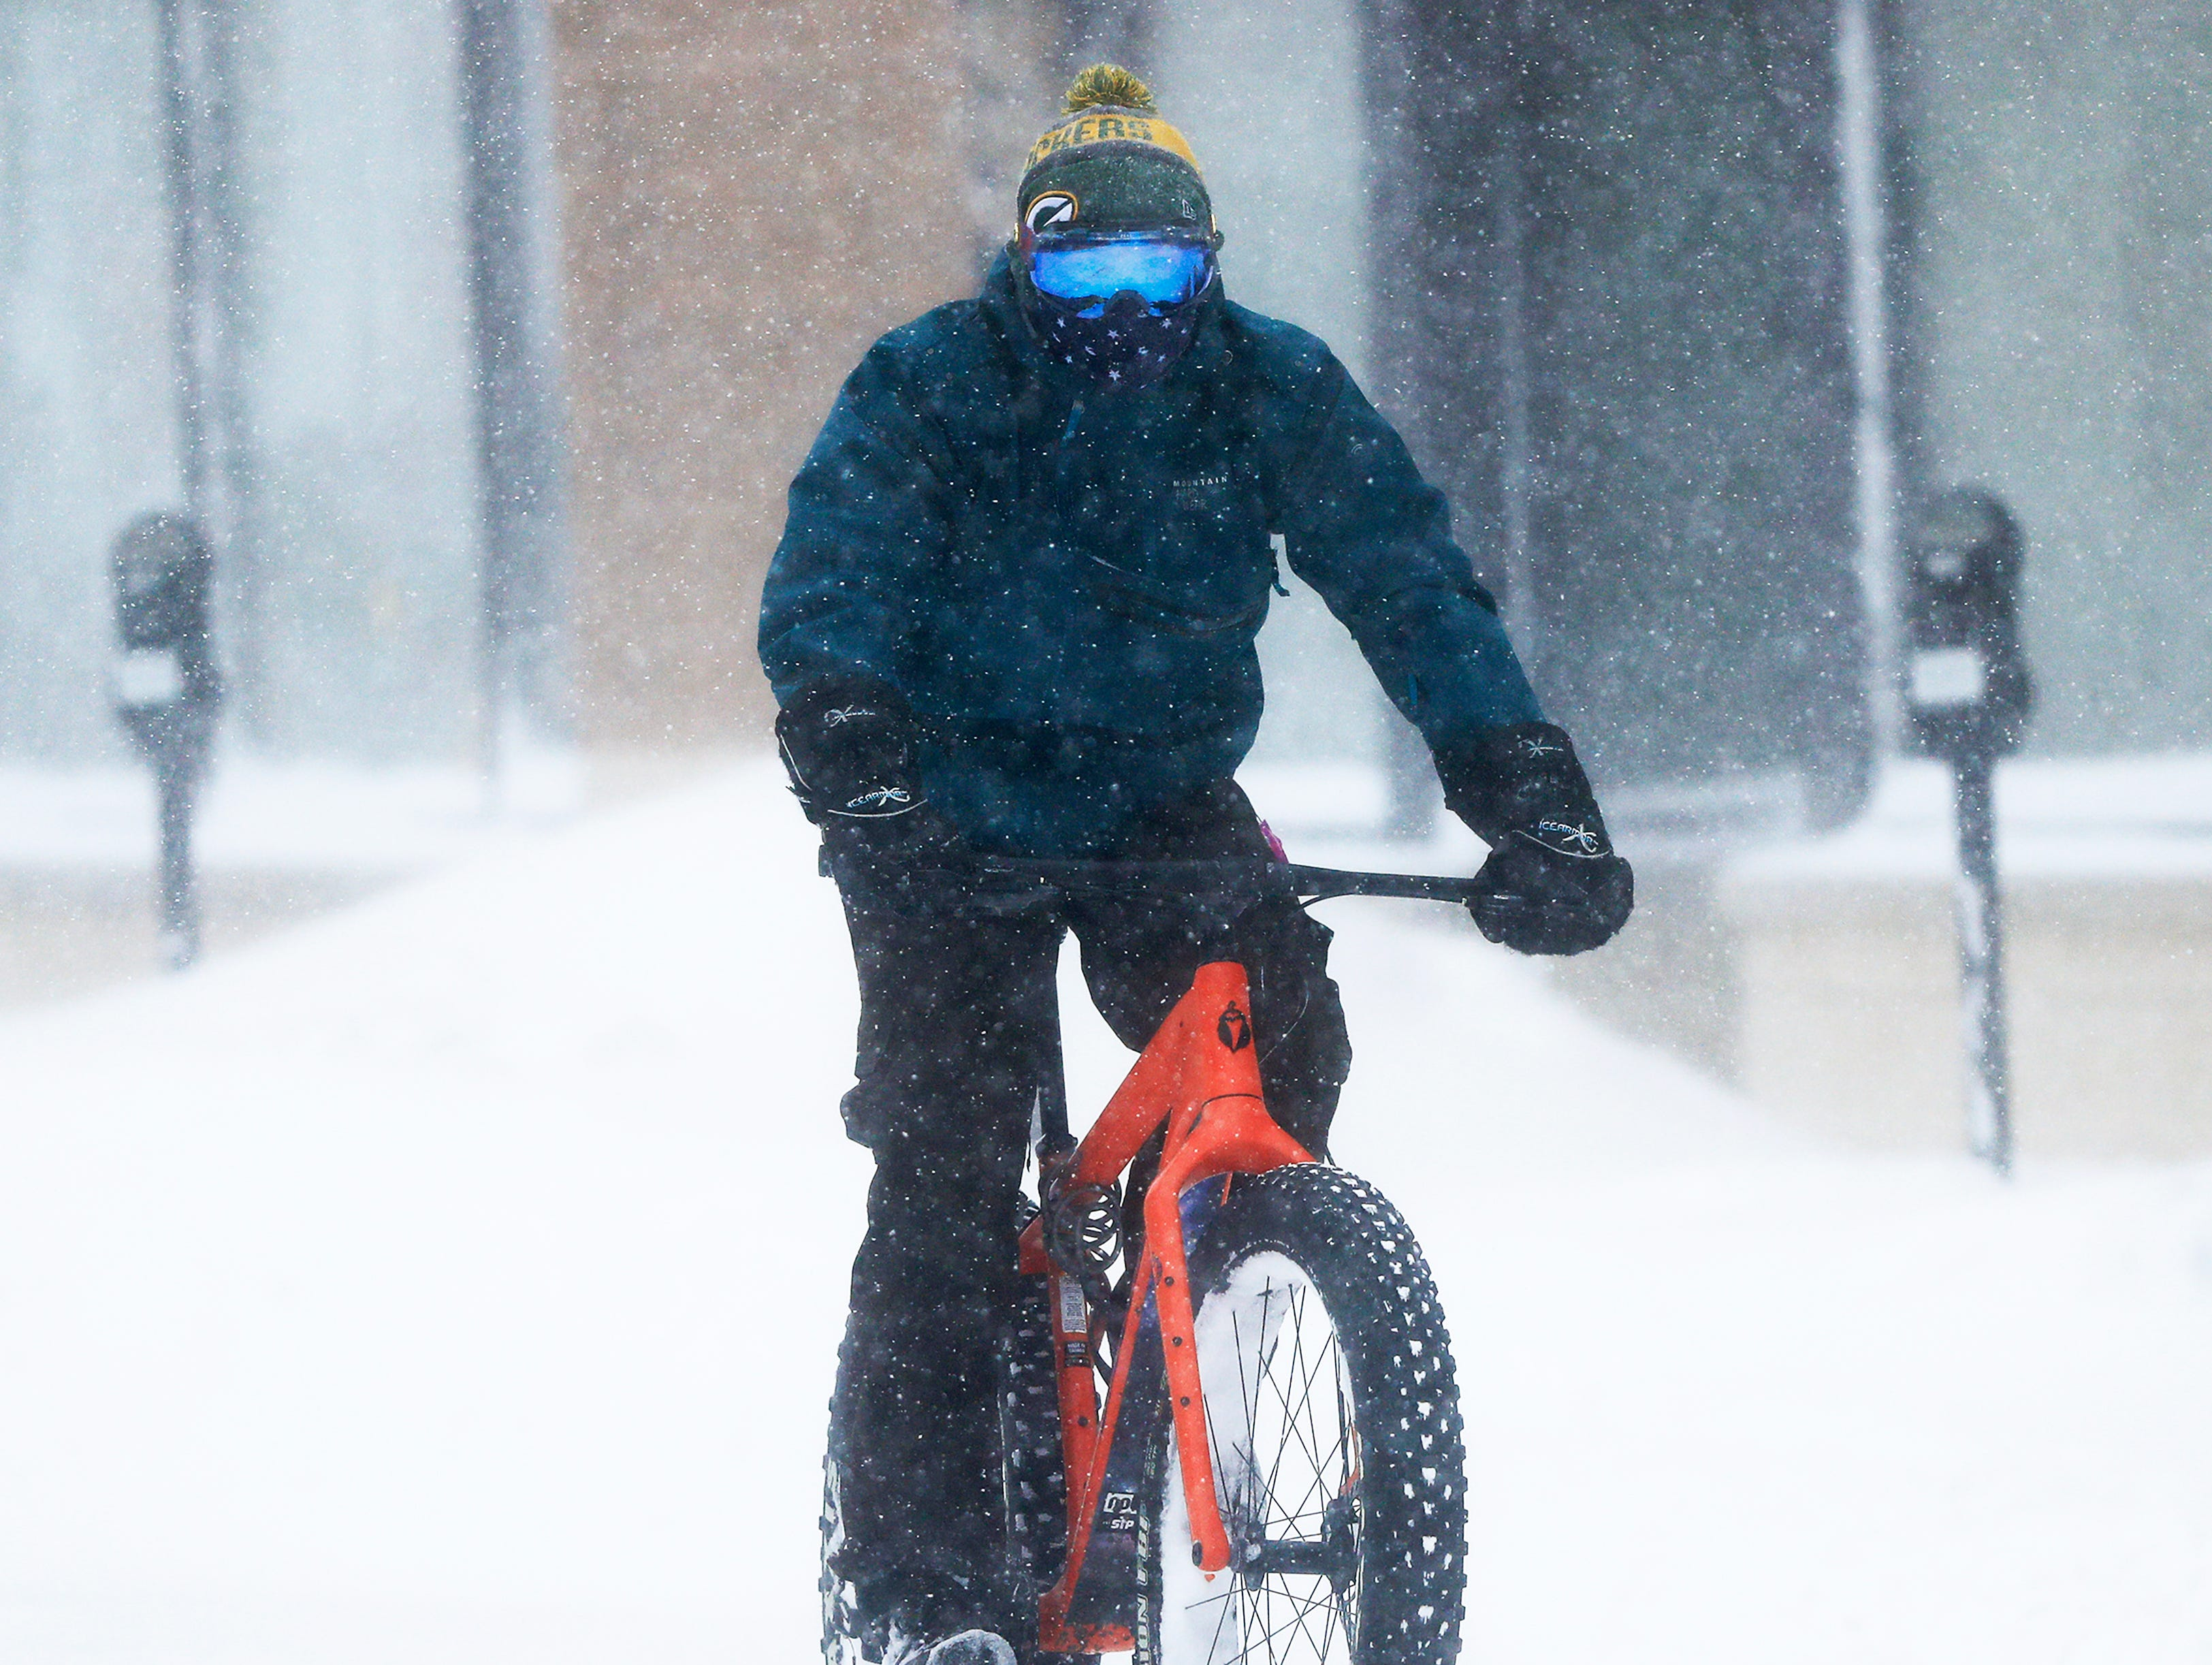 A cyclists rides downtown during a snowstorm on Monday, Jan. 28, 2019 in Green Bay, Wis.